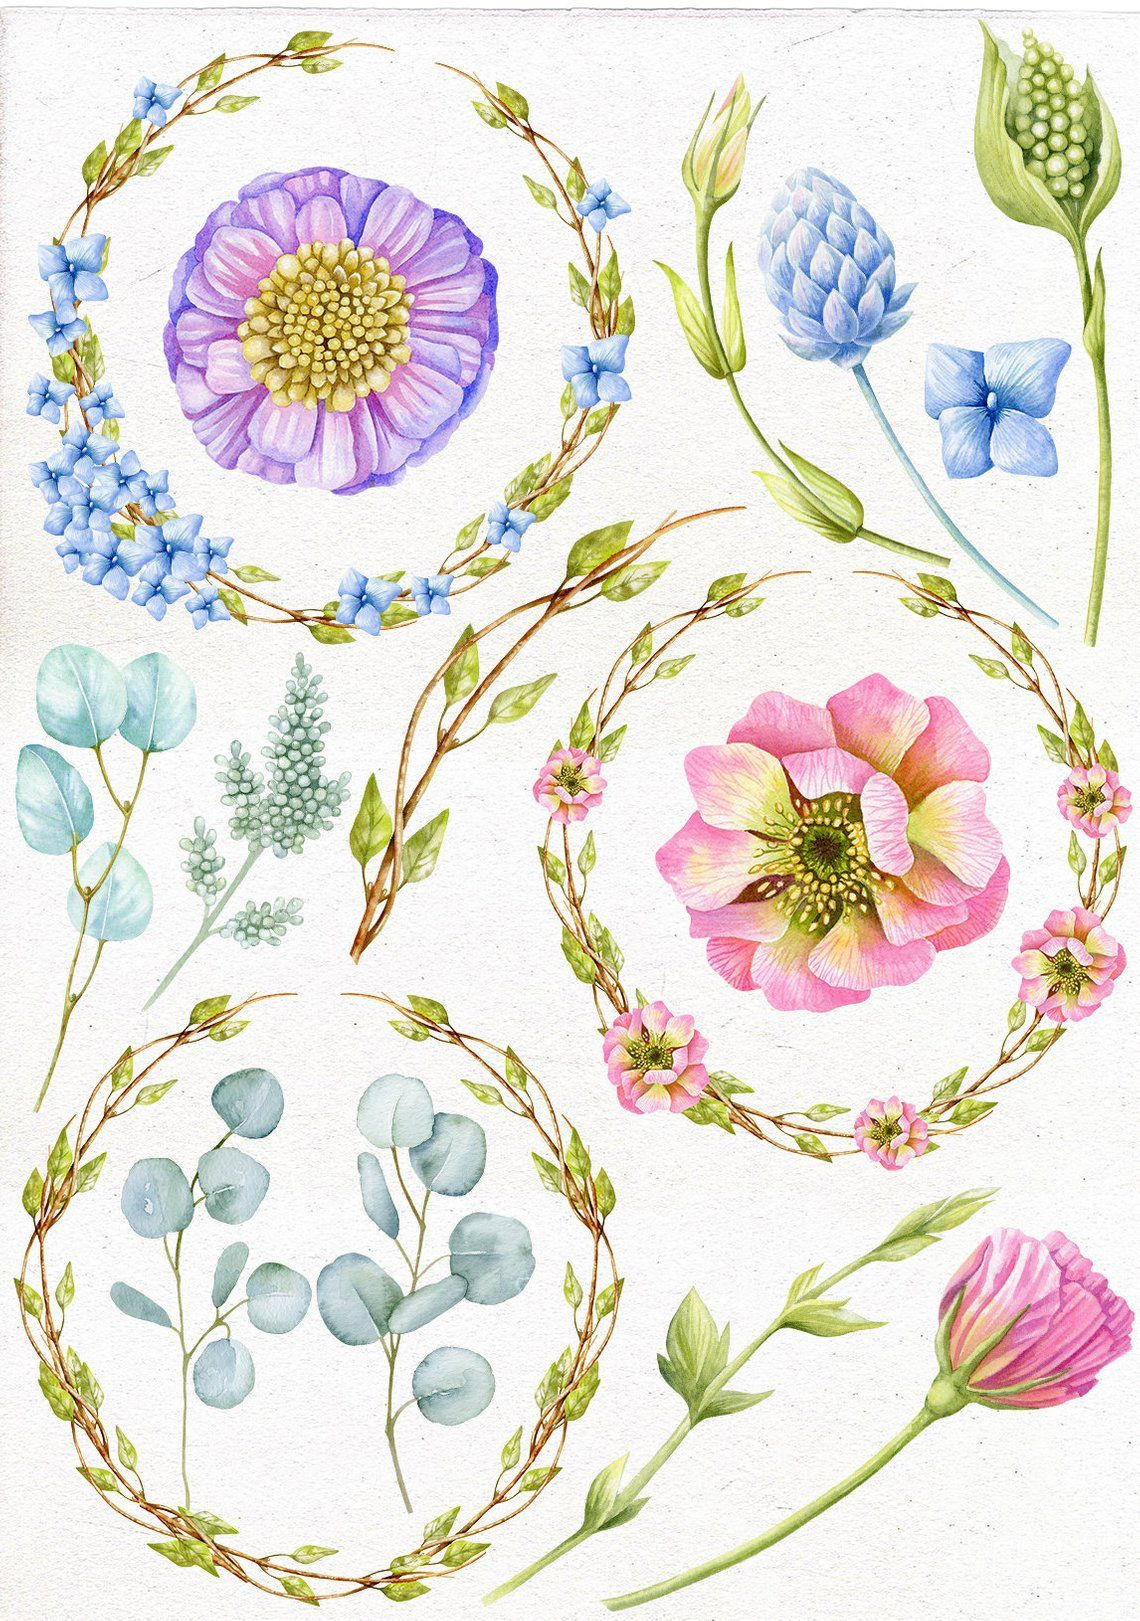 Watercolor floral clipart. Wedding Pink, Purple, Blue.